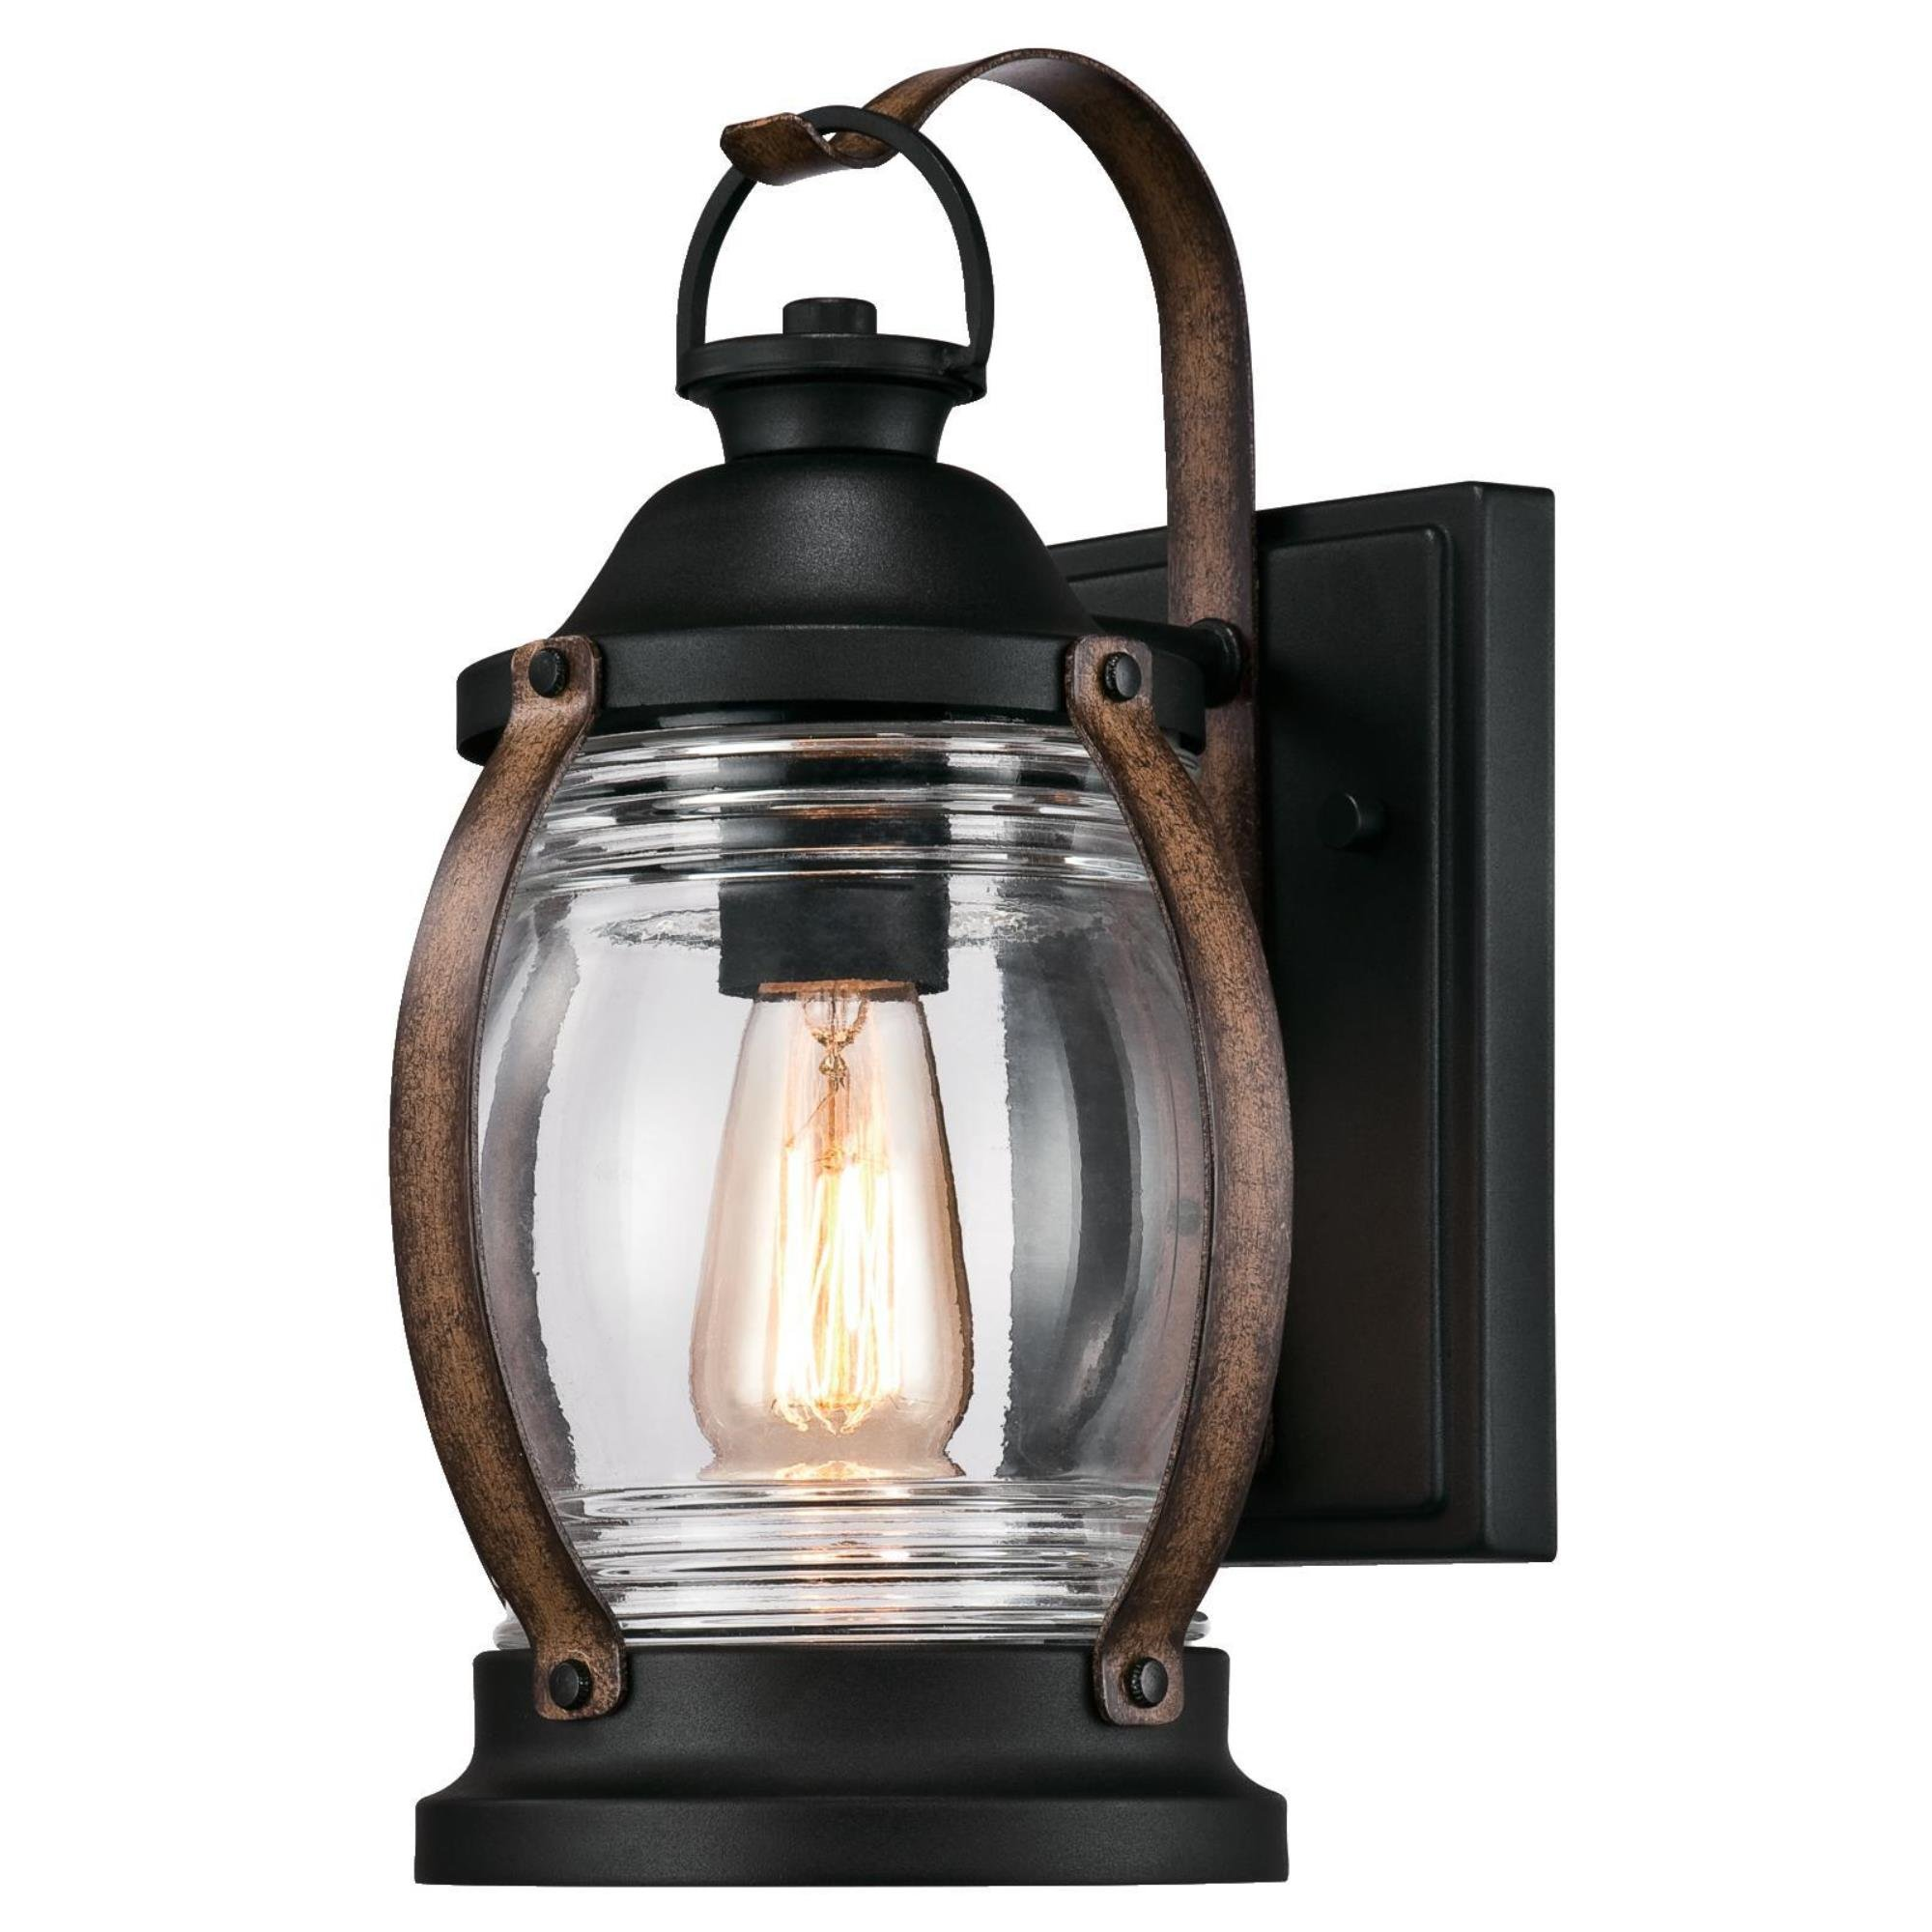 Westinghouse Lighting 6335100 Canyon One-Light Outdoor Wall Fixture, Textured Black and Barnwood Finish with Clear Glass by Westinghouse Lighting